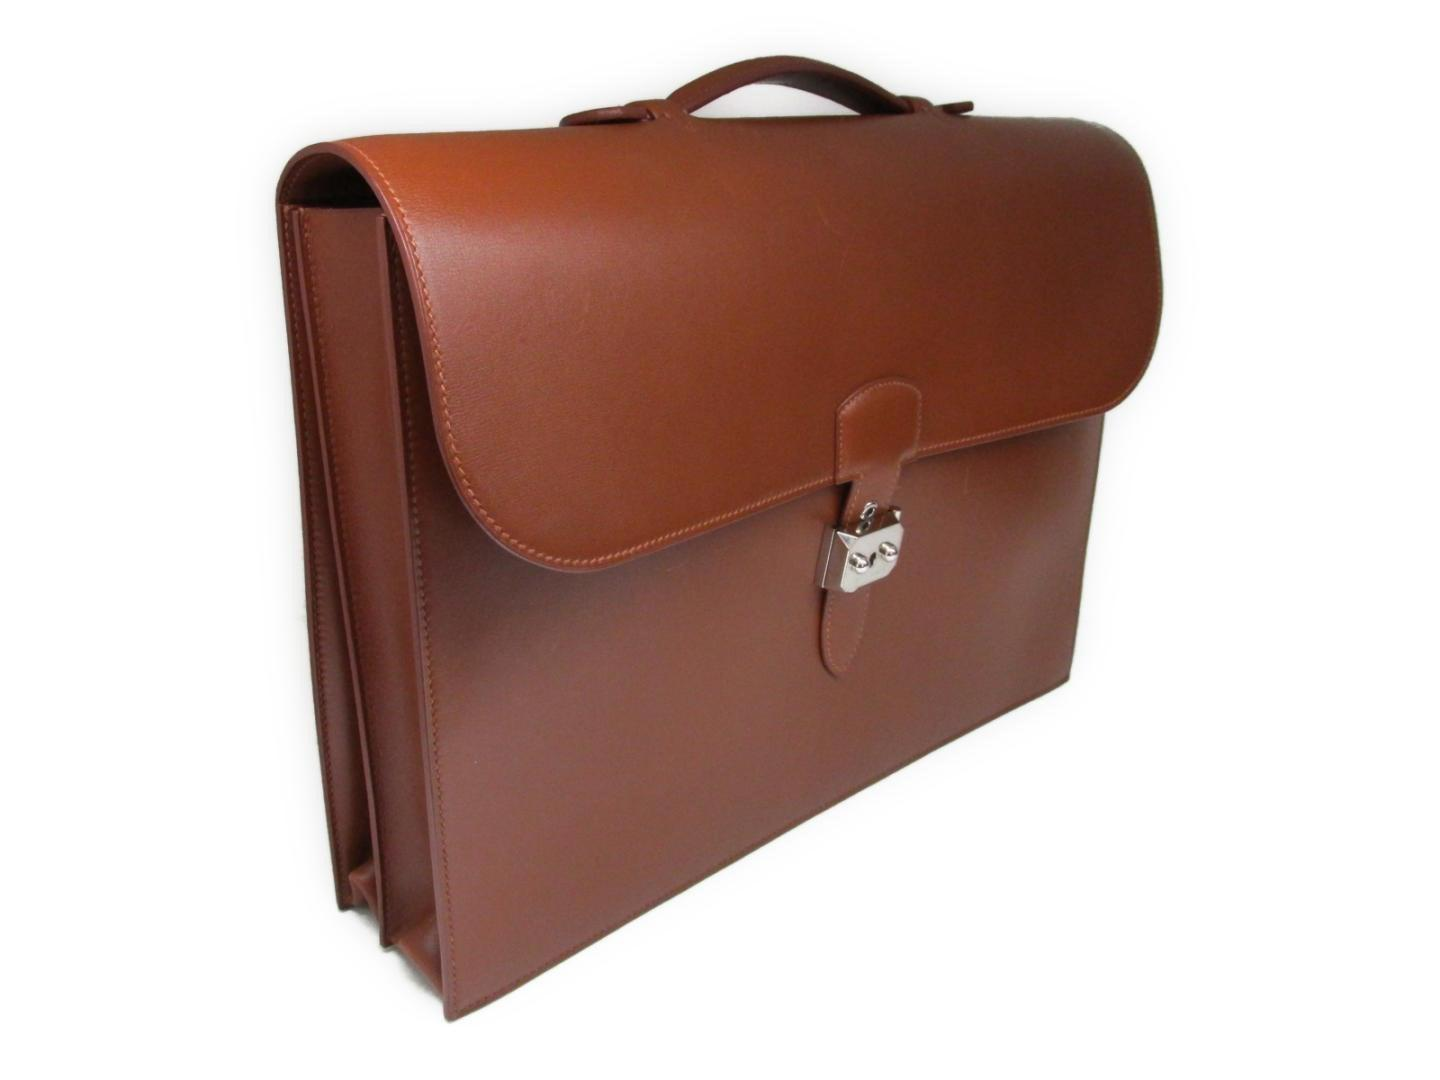 35960383e1ce Lyst - Hermès Sac A Depeche Business Bag Briefcase Box Calf Leather ...